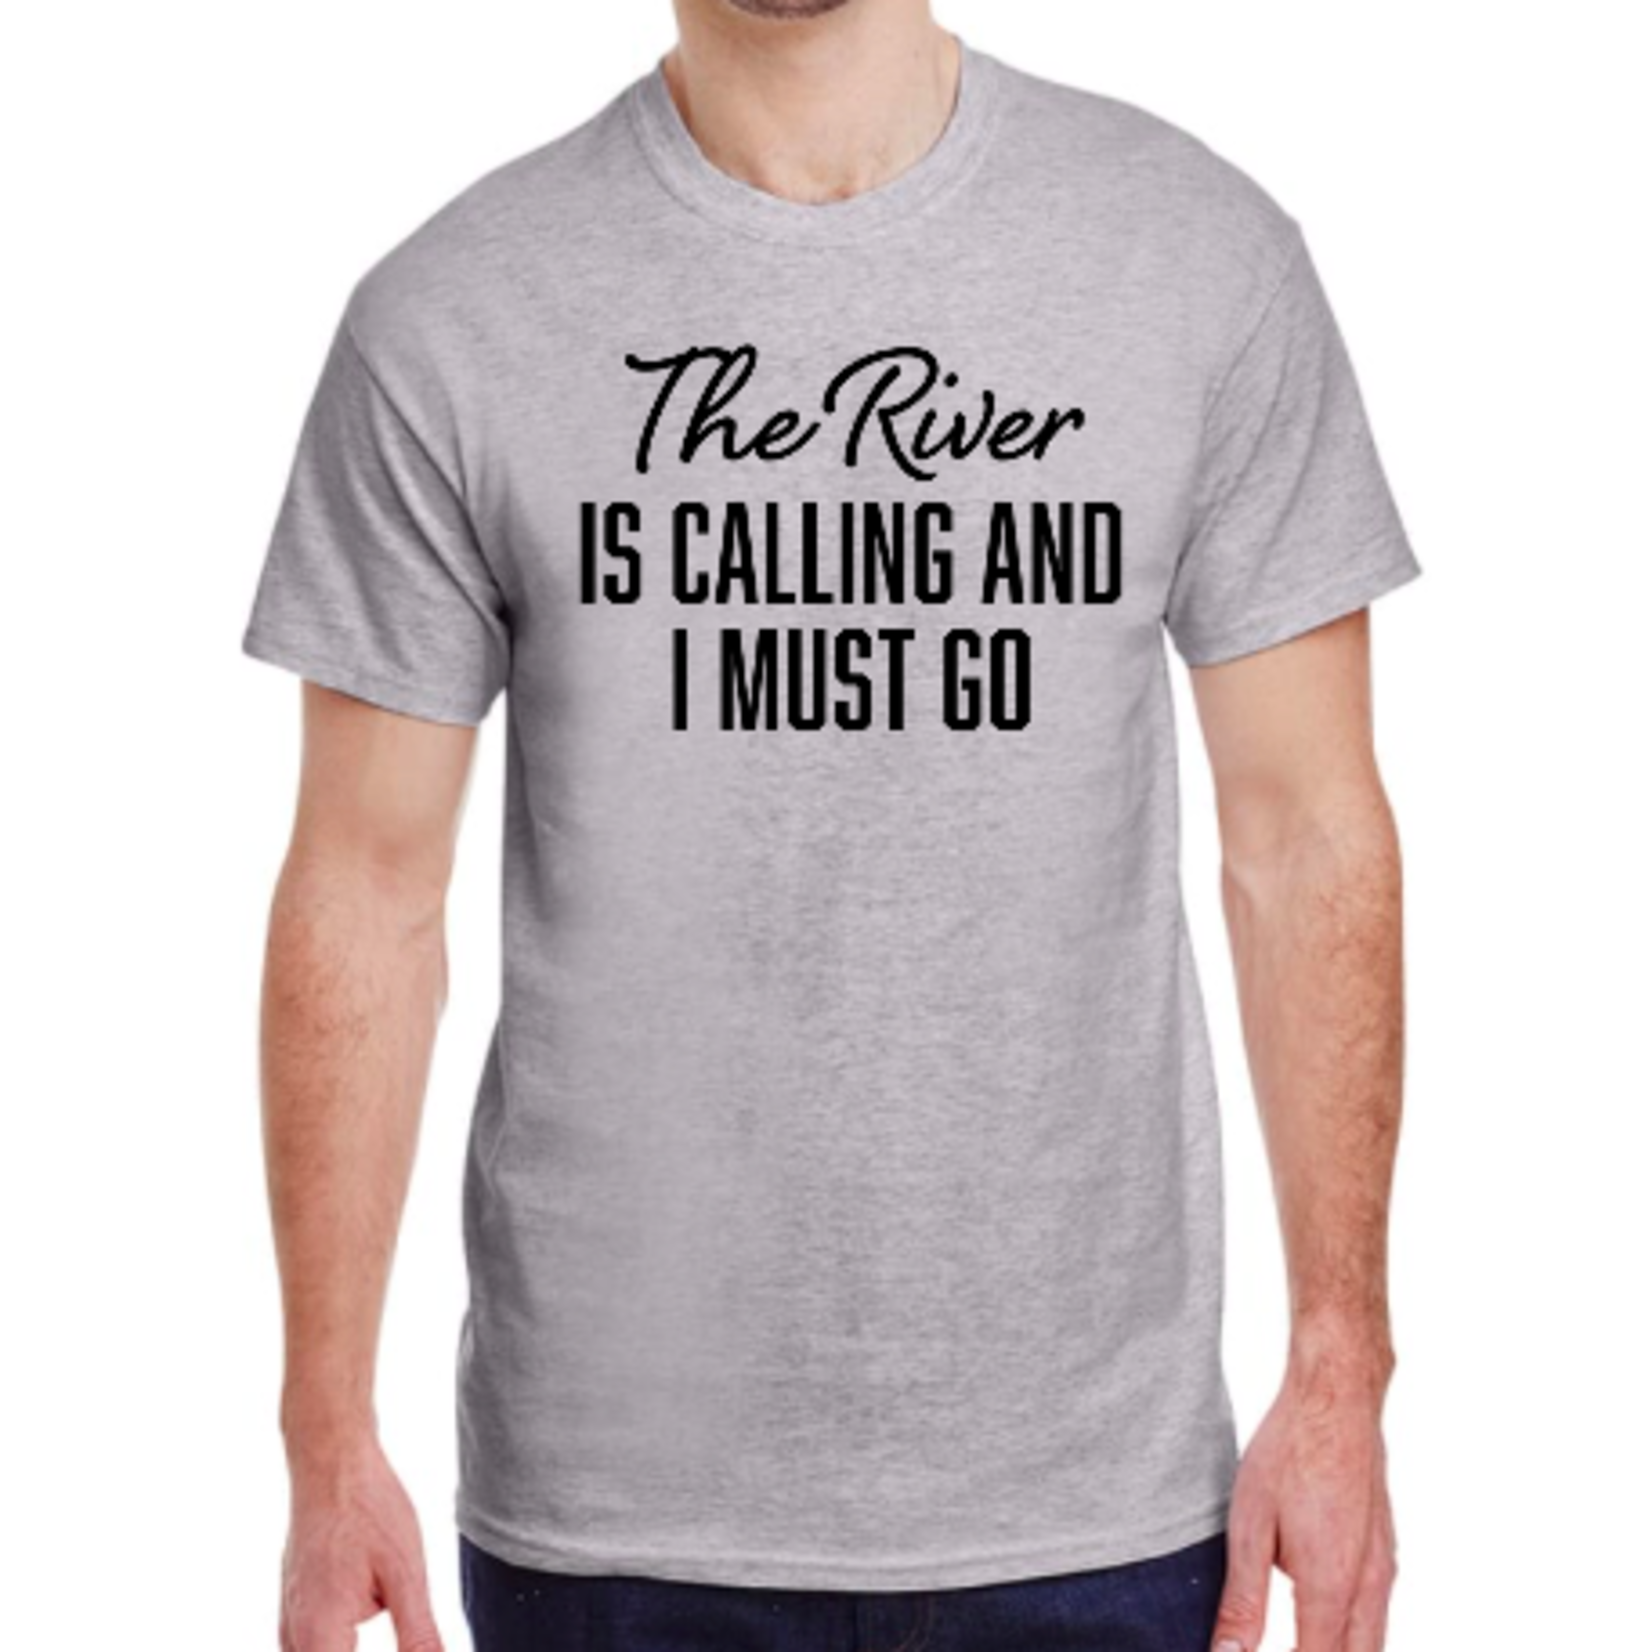 favourite things apparel Men's T-shirt: The river is calling me and I must go